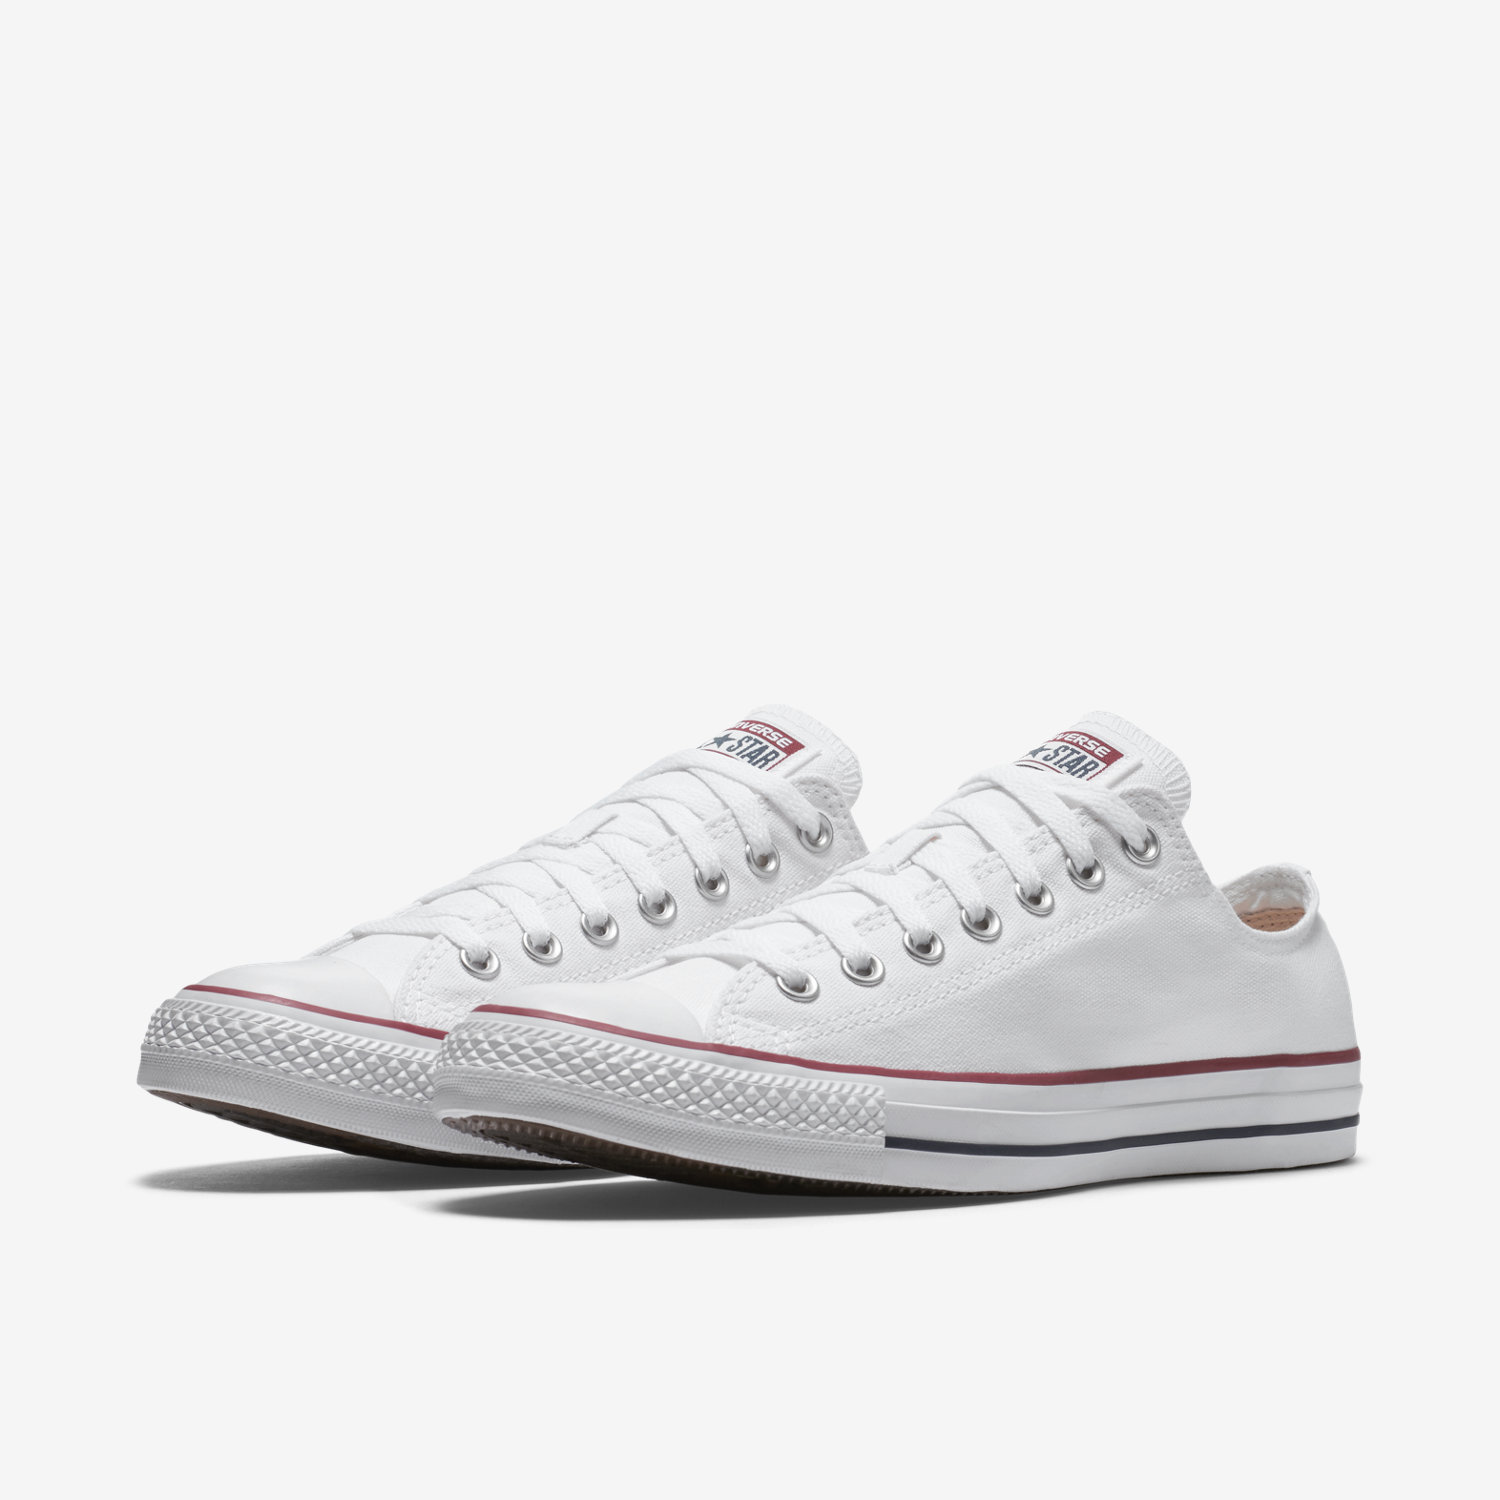 White converse converse chuck taylor all star low top unisex shoe. nike.com MSQHUJE